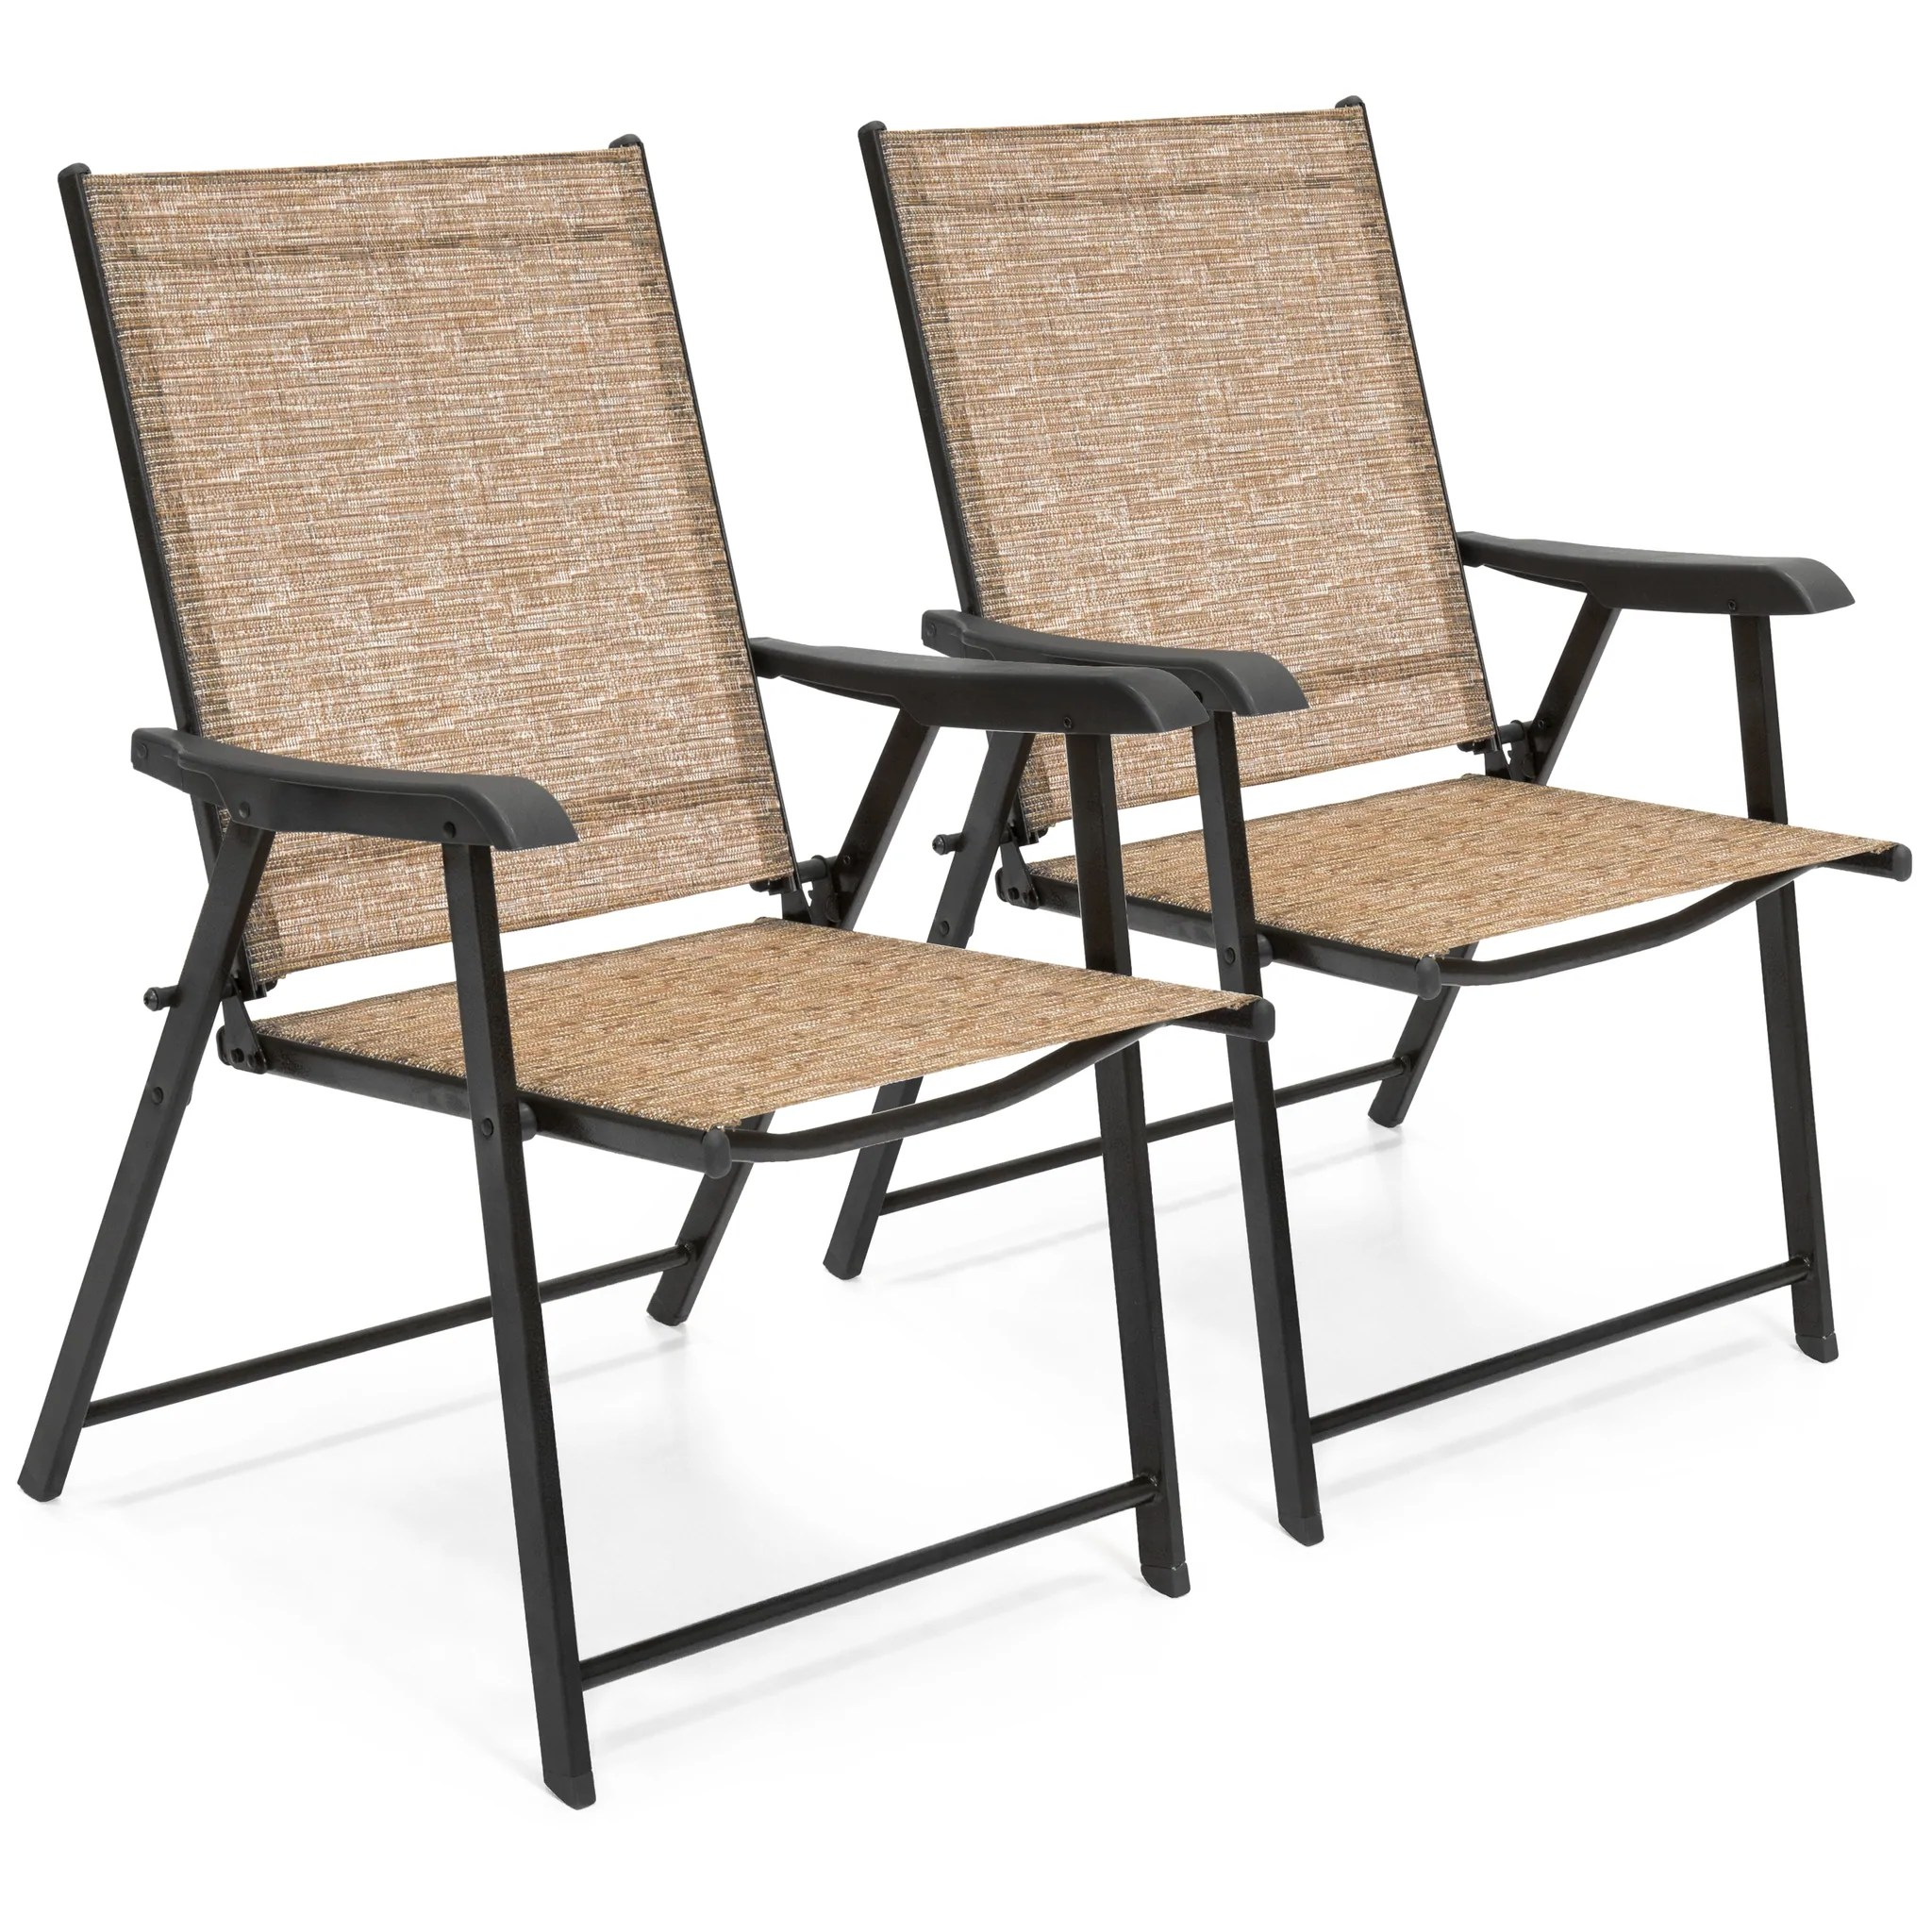 sling back patio chairs chair covers rental vancouver set of 2 folding brown  best choice